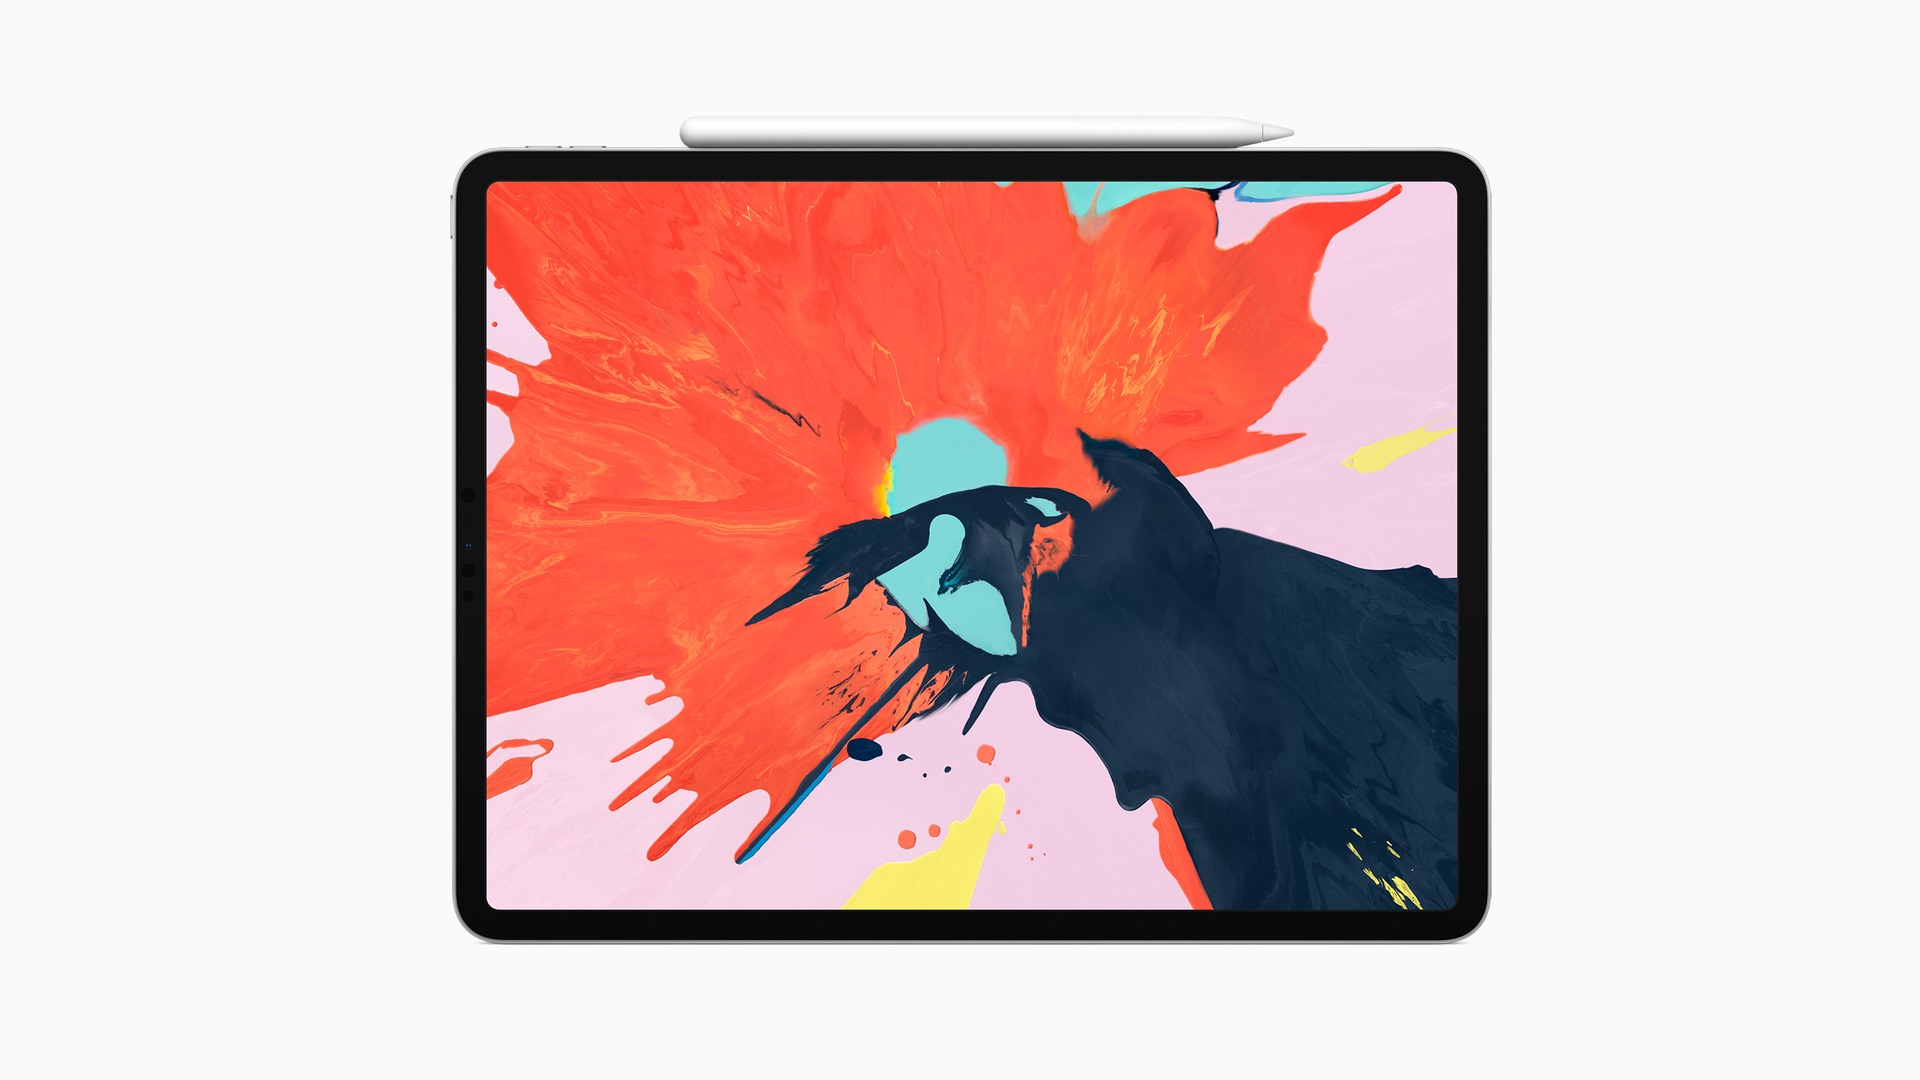 New iPad Pro: First Impressions